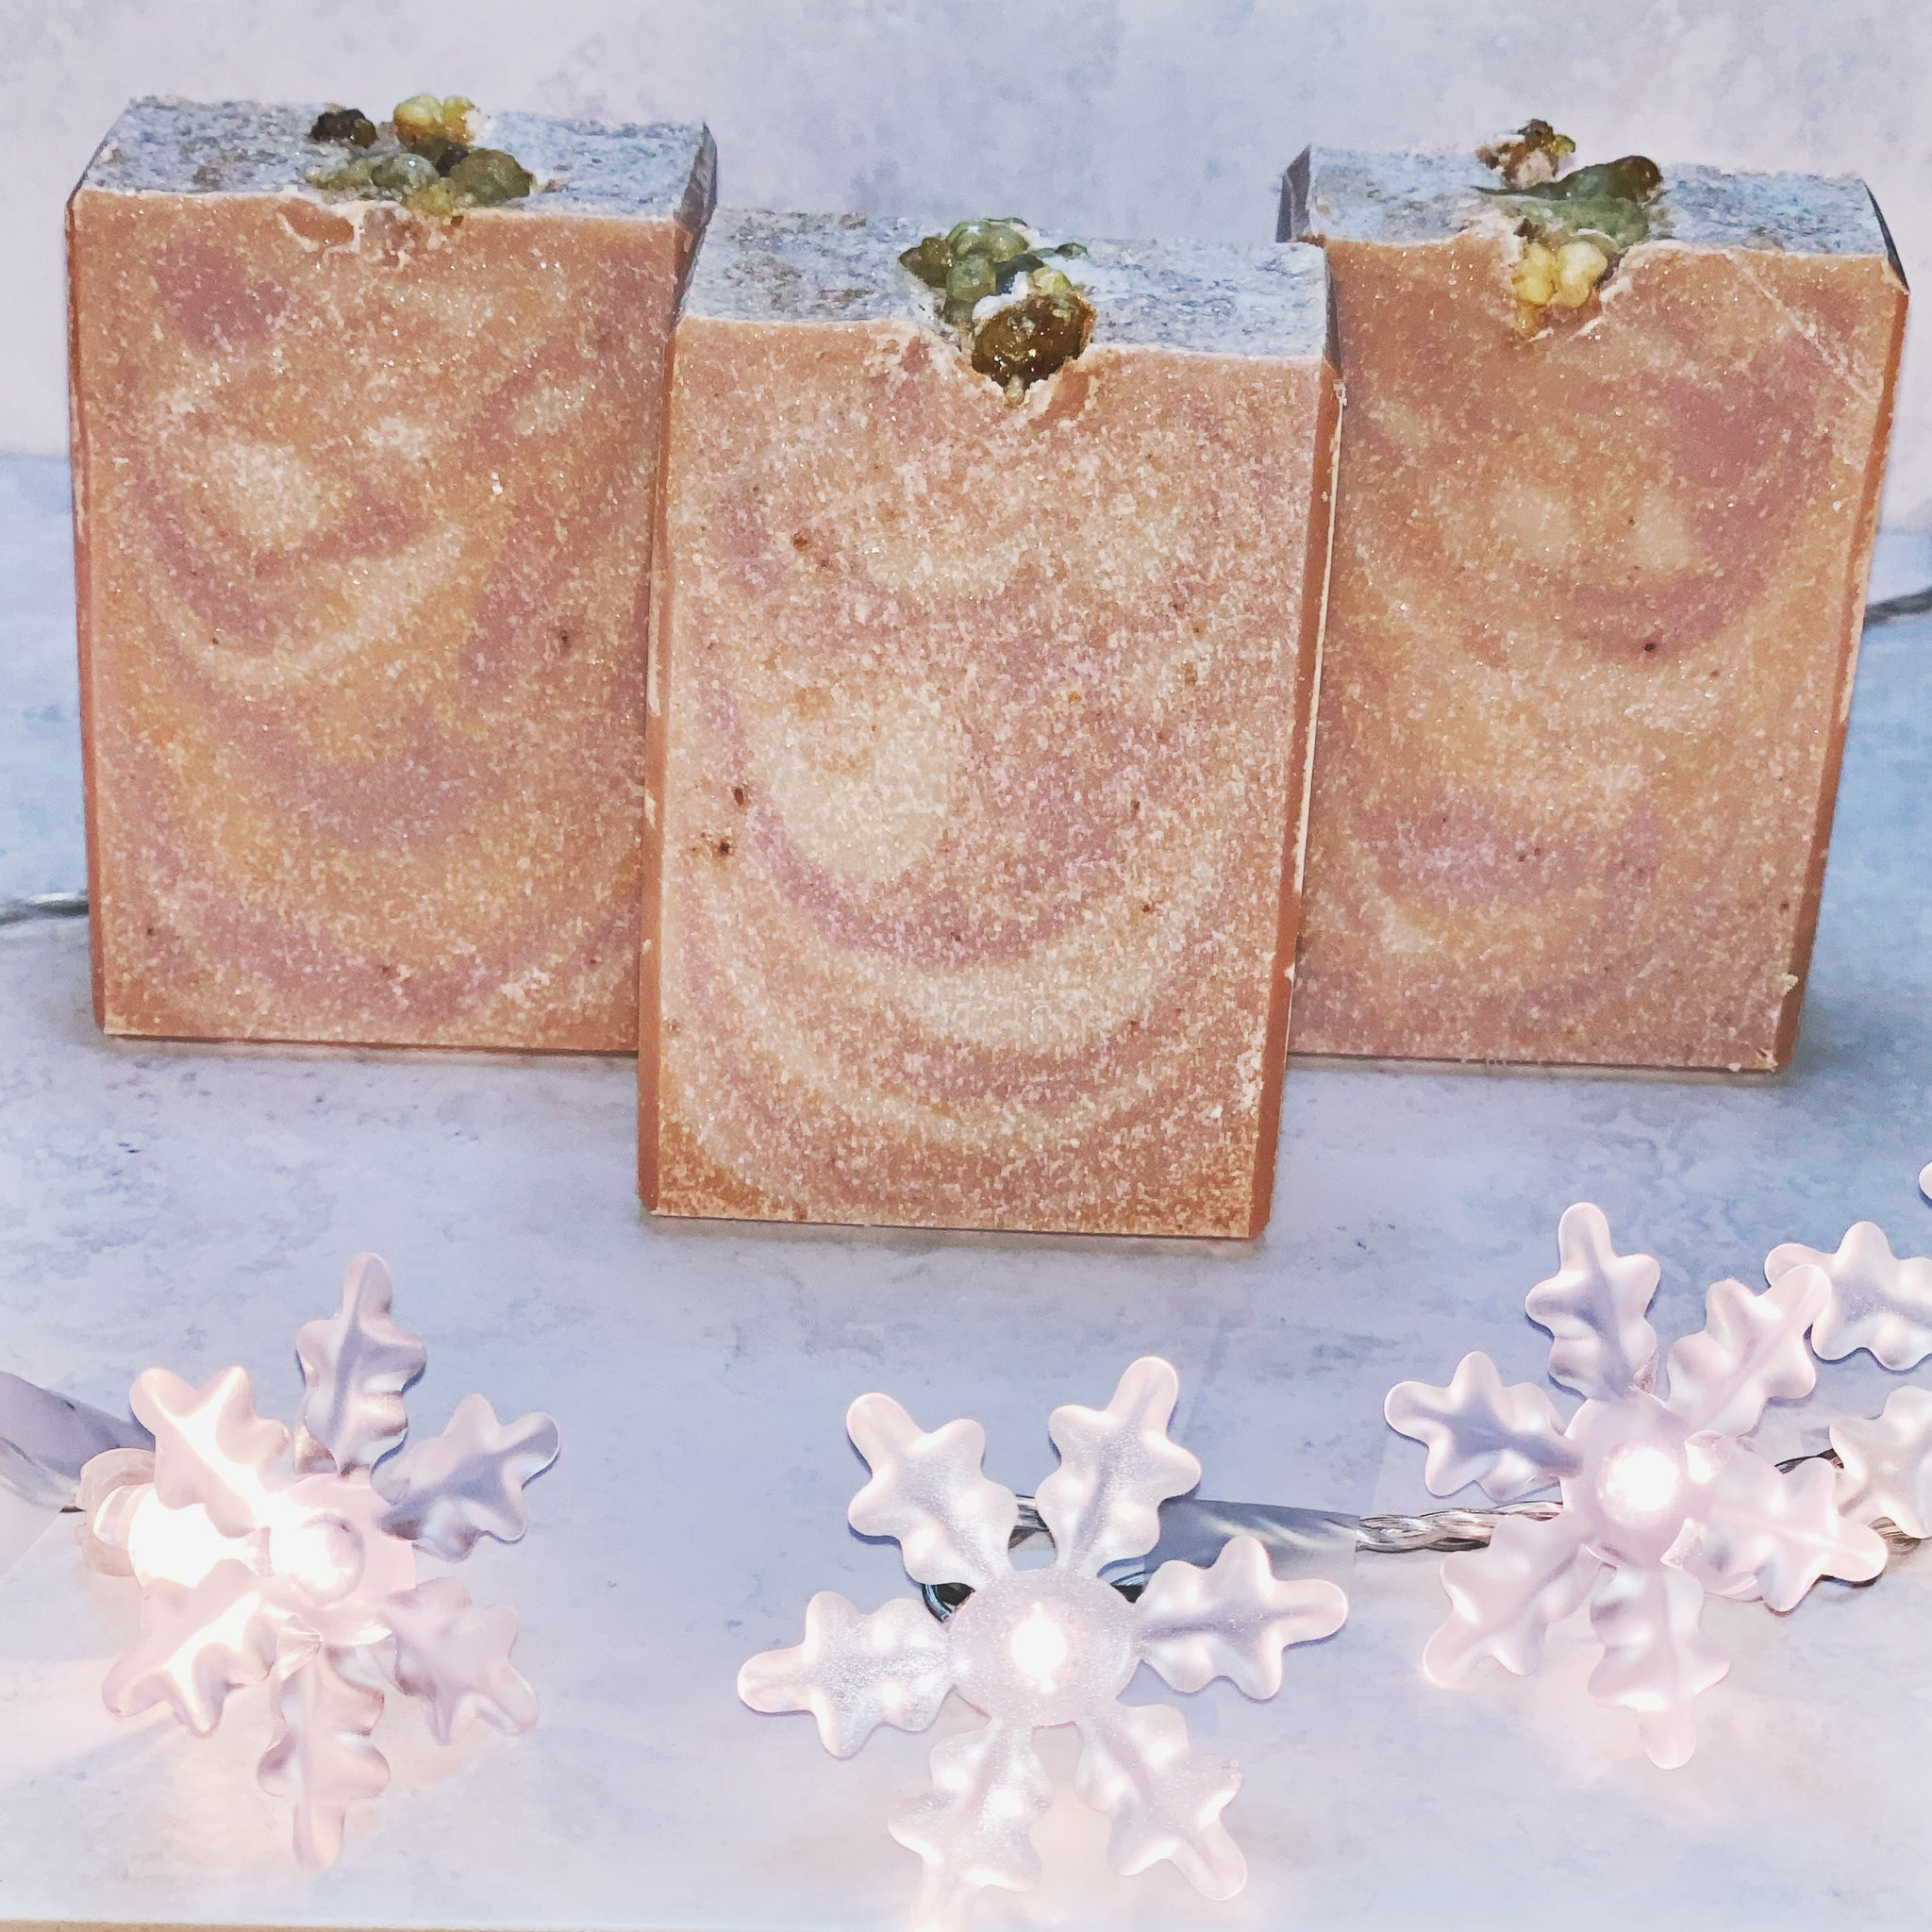 6 oz Frankincense & Myrrh Cold Process Soap